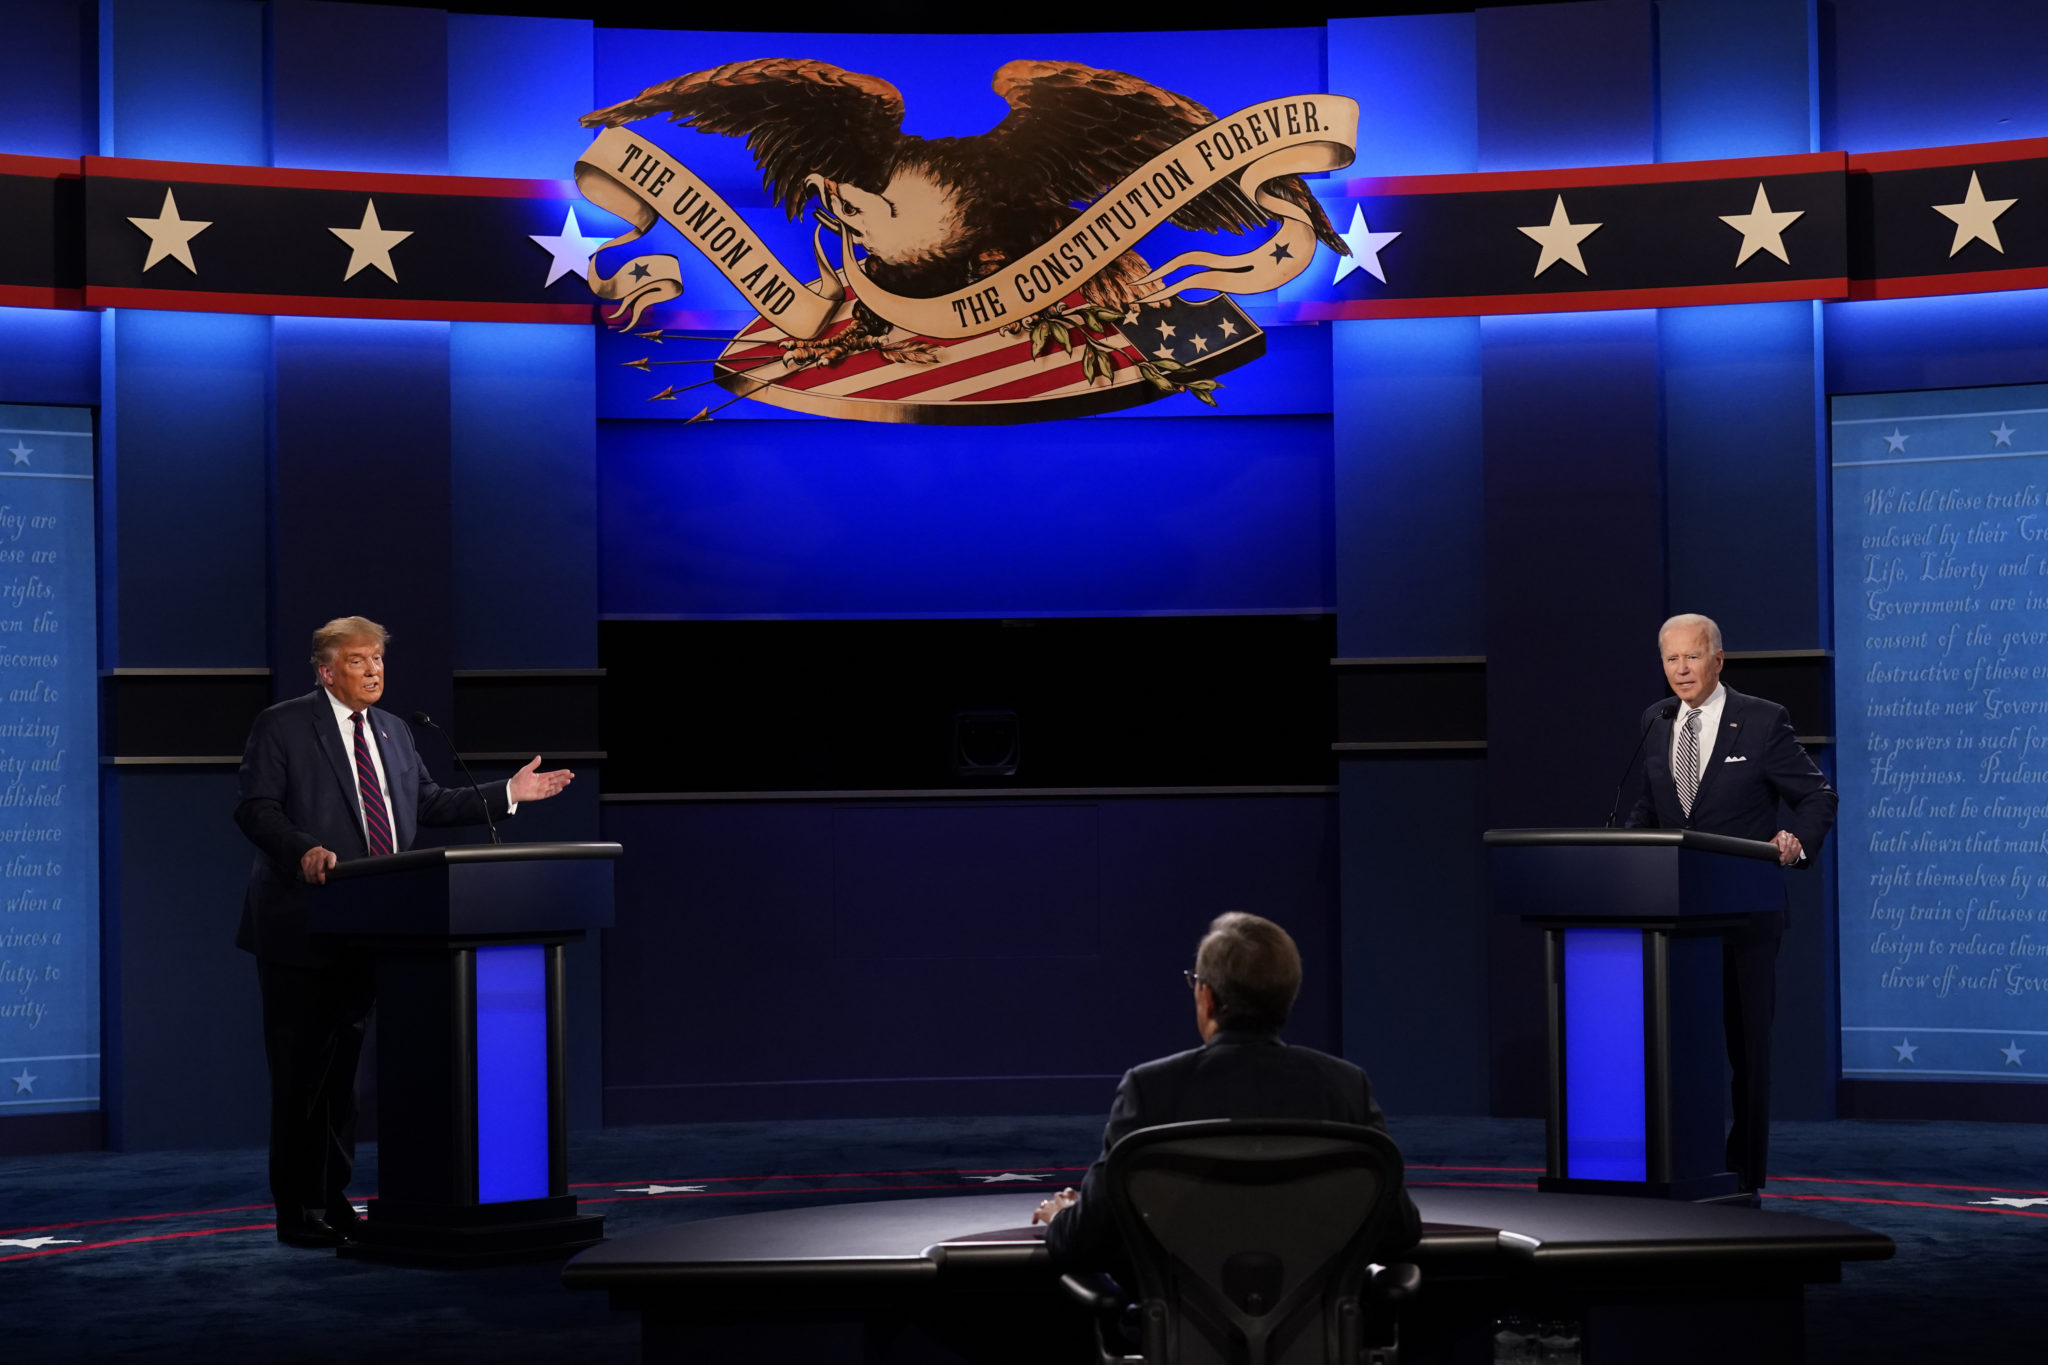 BYU College Republicans and Democrats React to First Presidential Debate